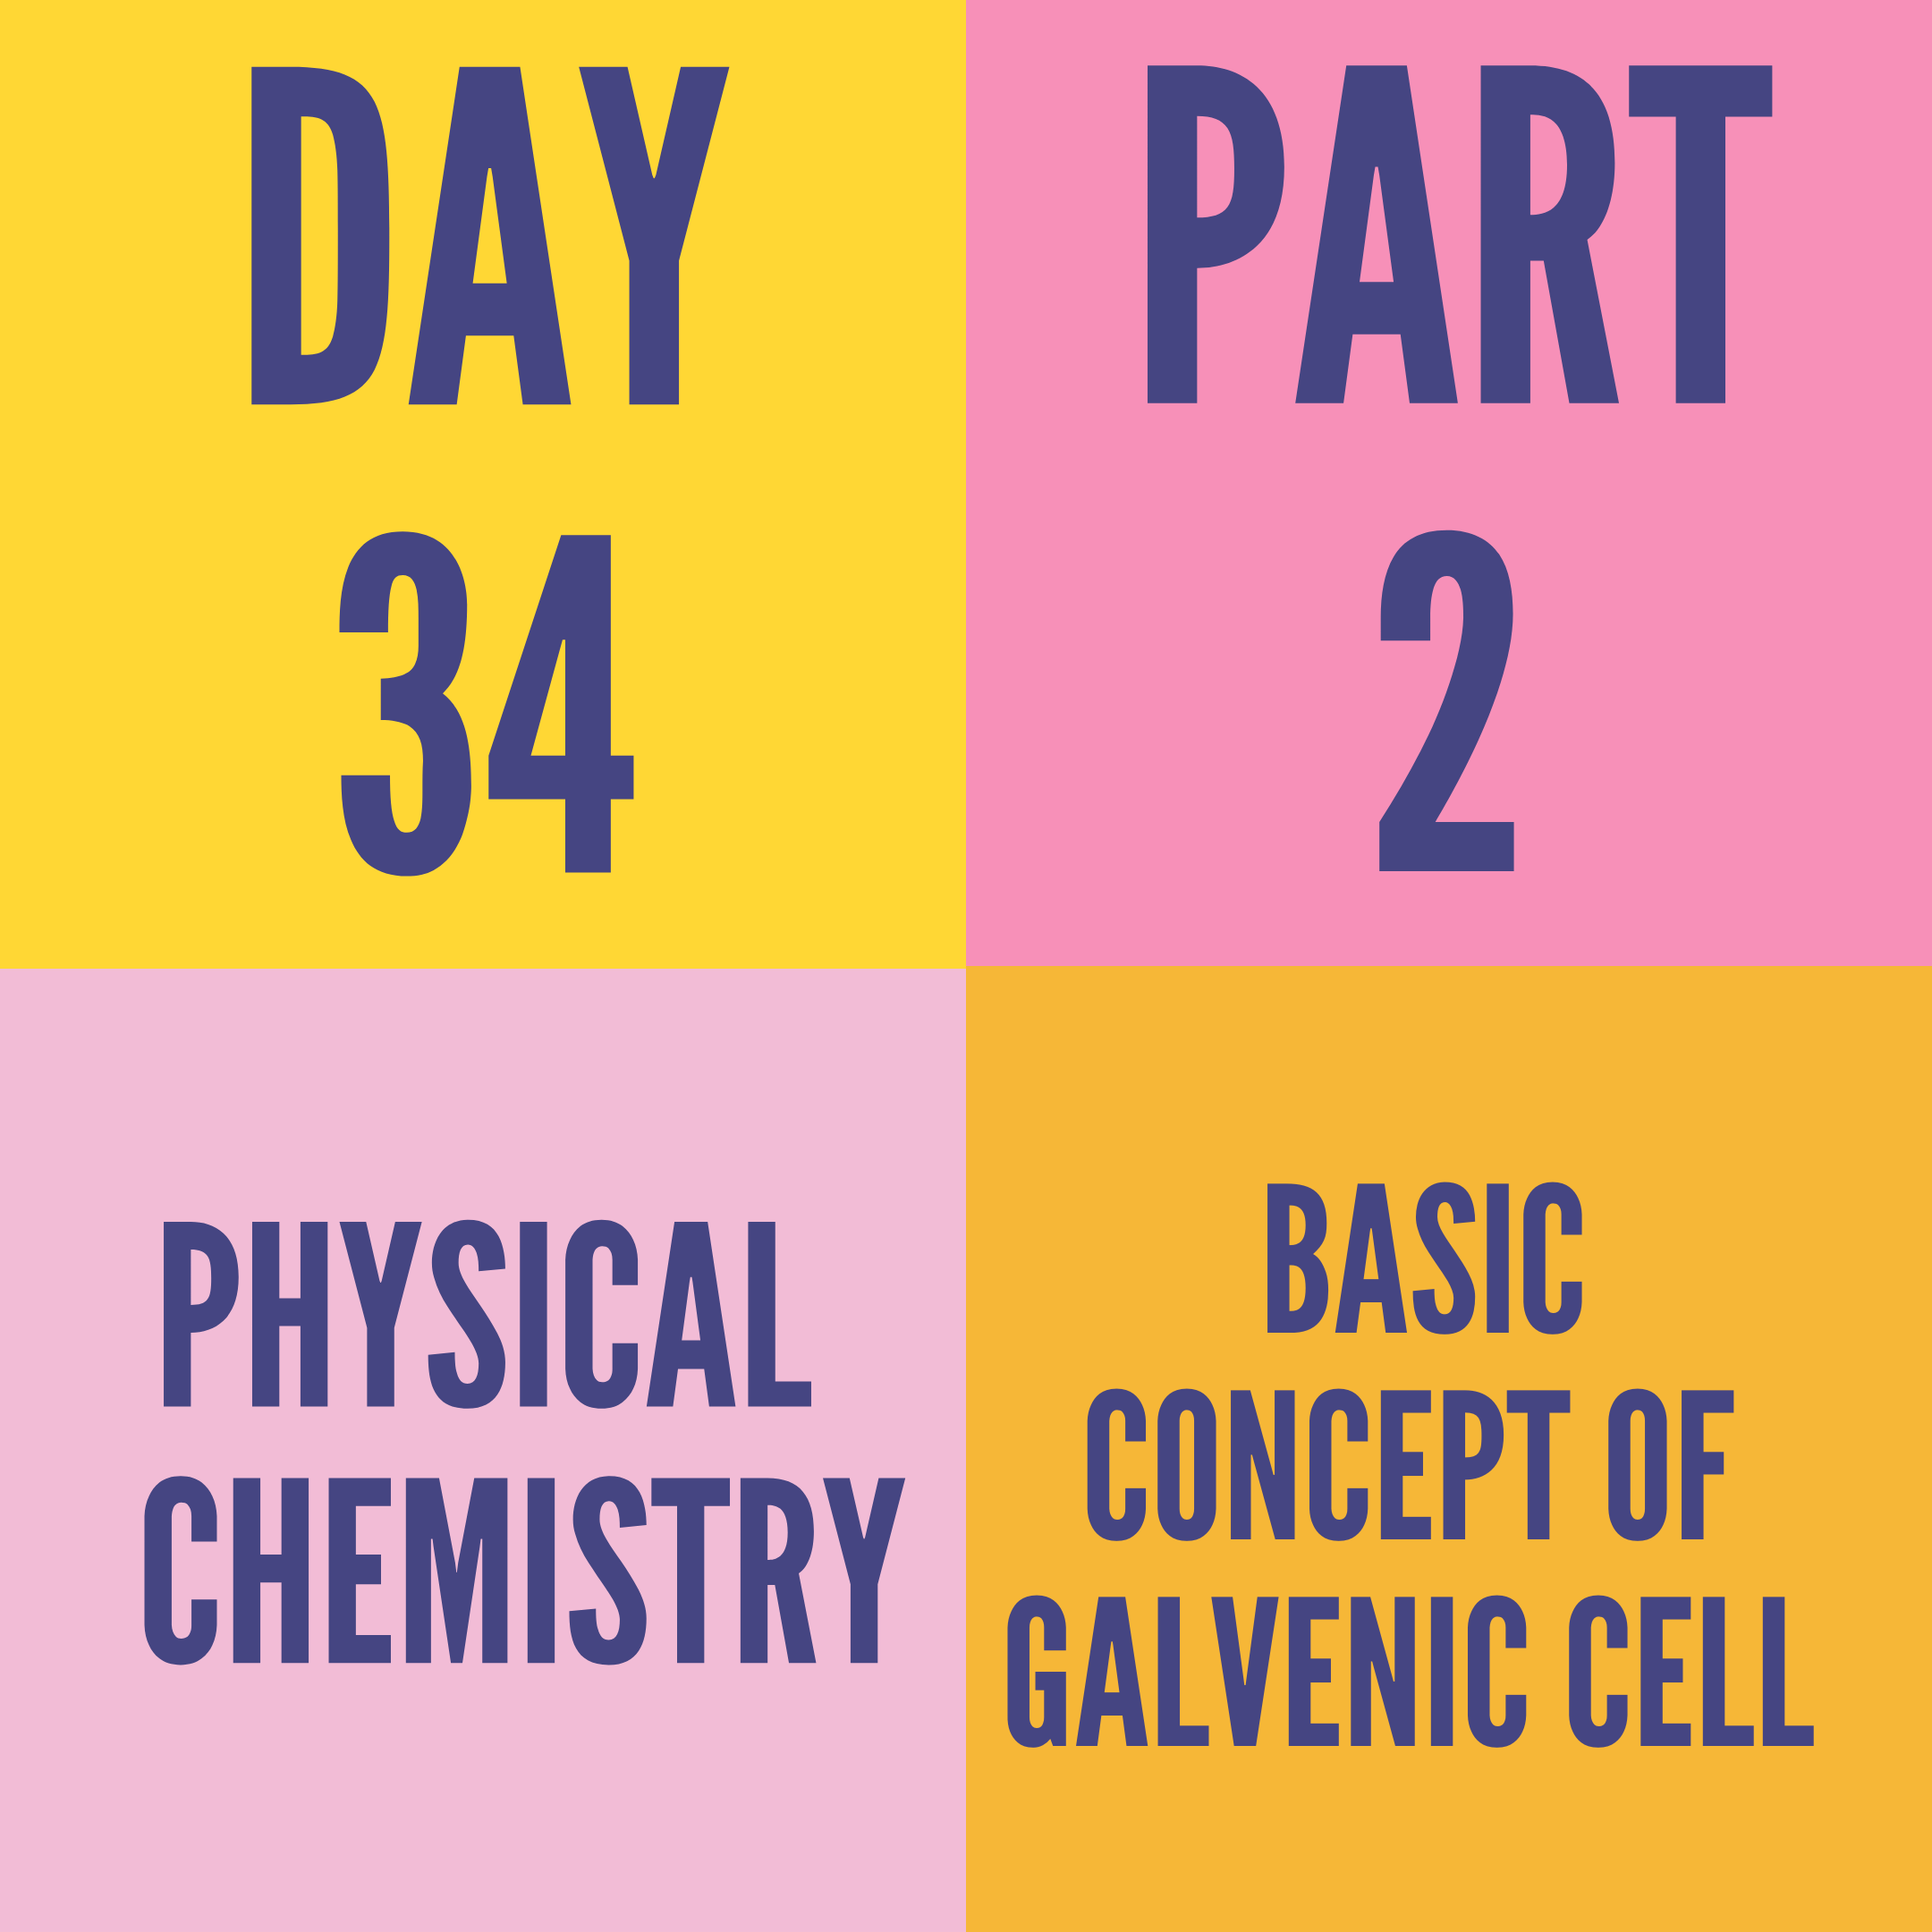 DAY-34 PART-2 BASIC CONCEPT OF GALVENIC CELL